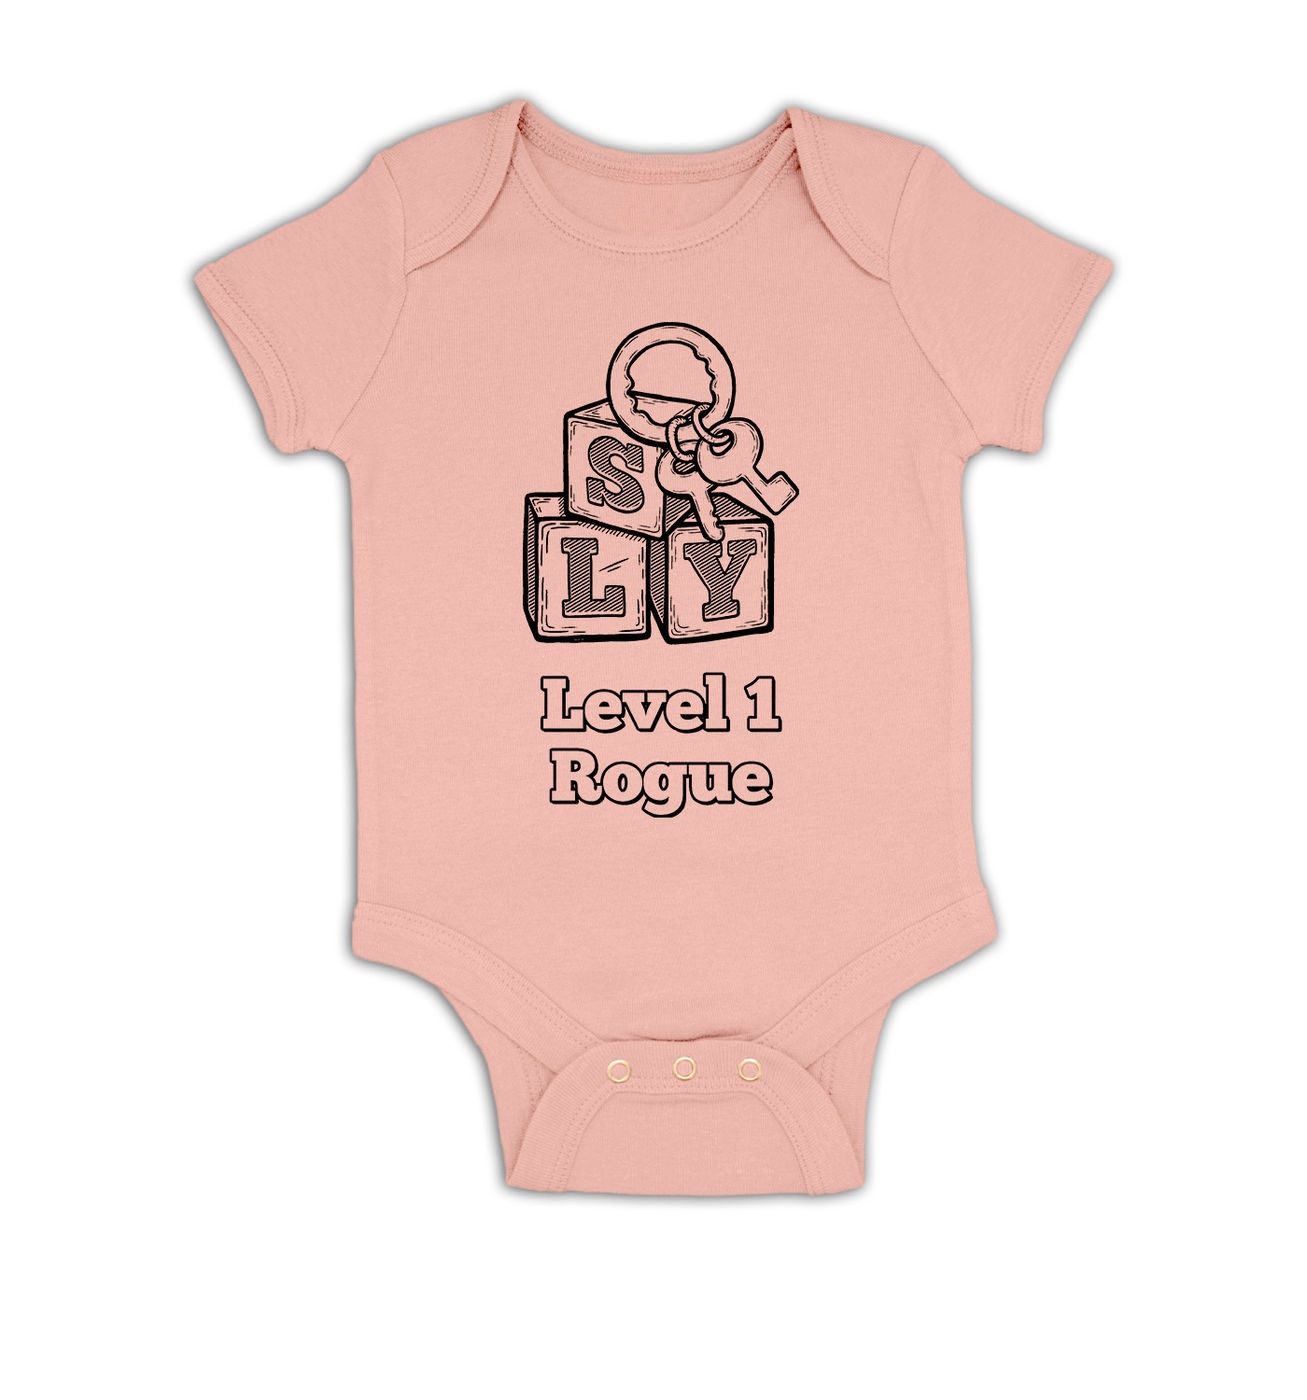 Level 1 Rogue baby grow by Something Geeky